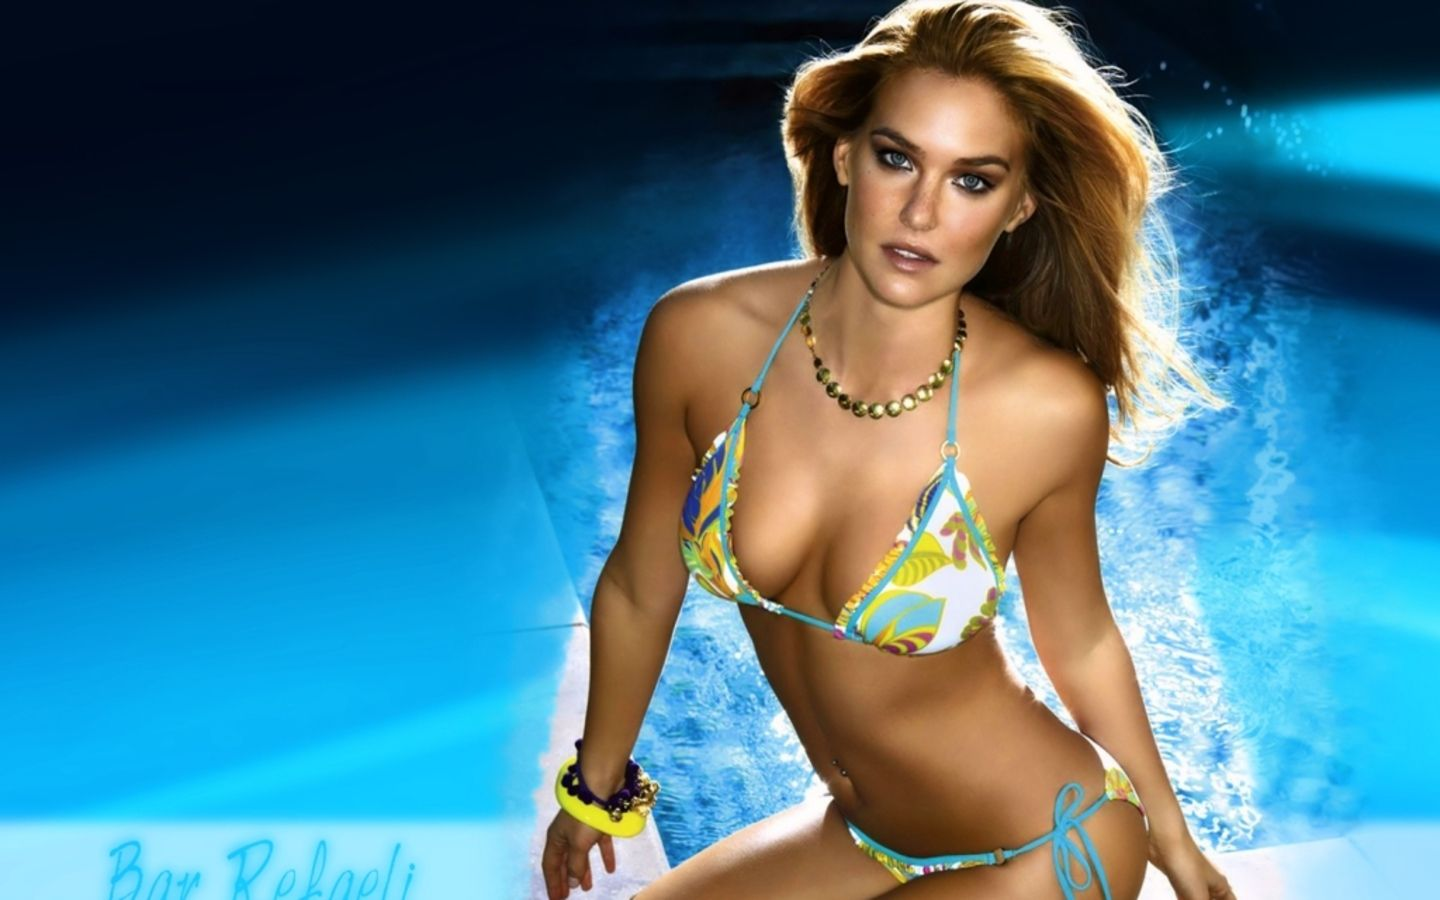 Bar Refaeli -Join thousands of members collecting beautiful autographed star photos. #autographs